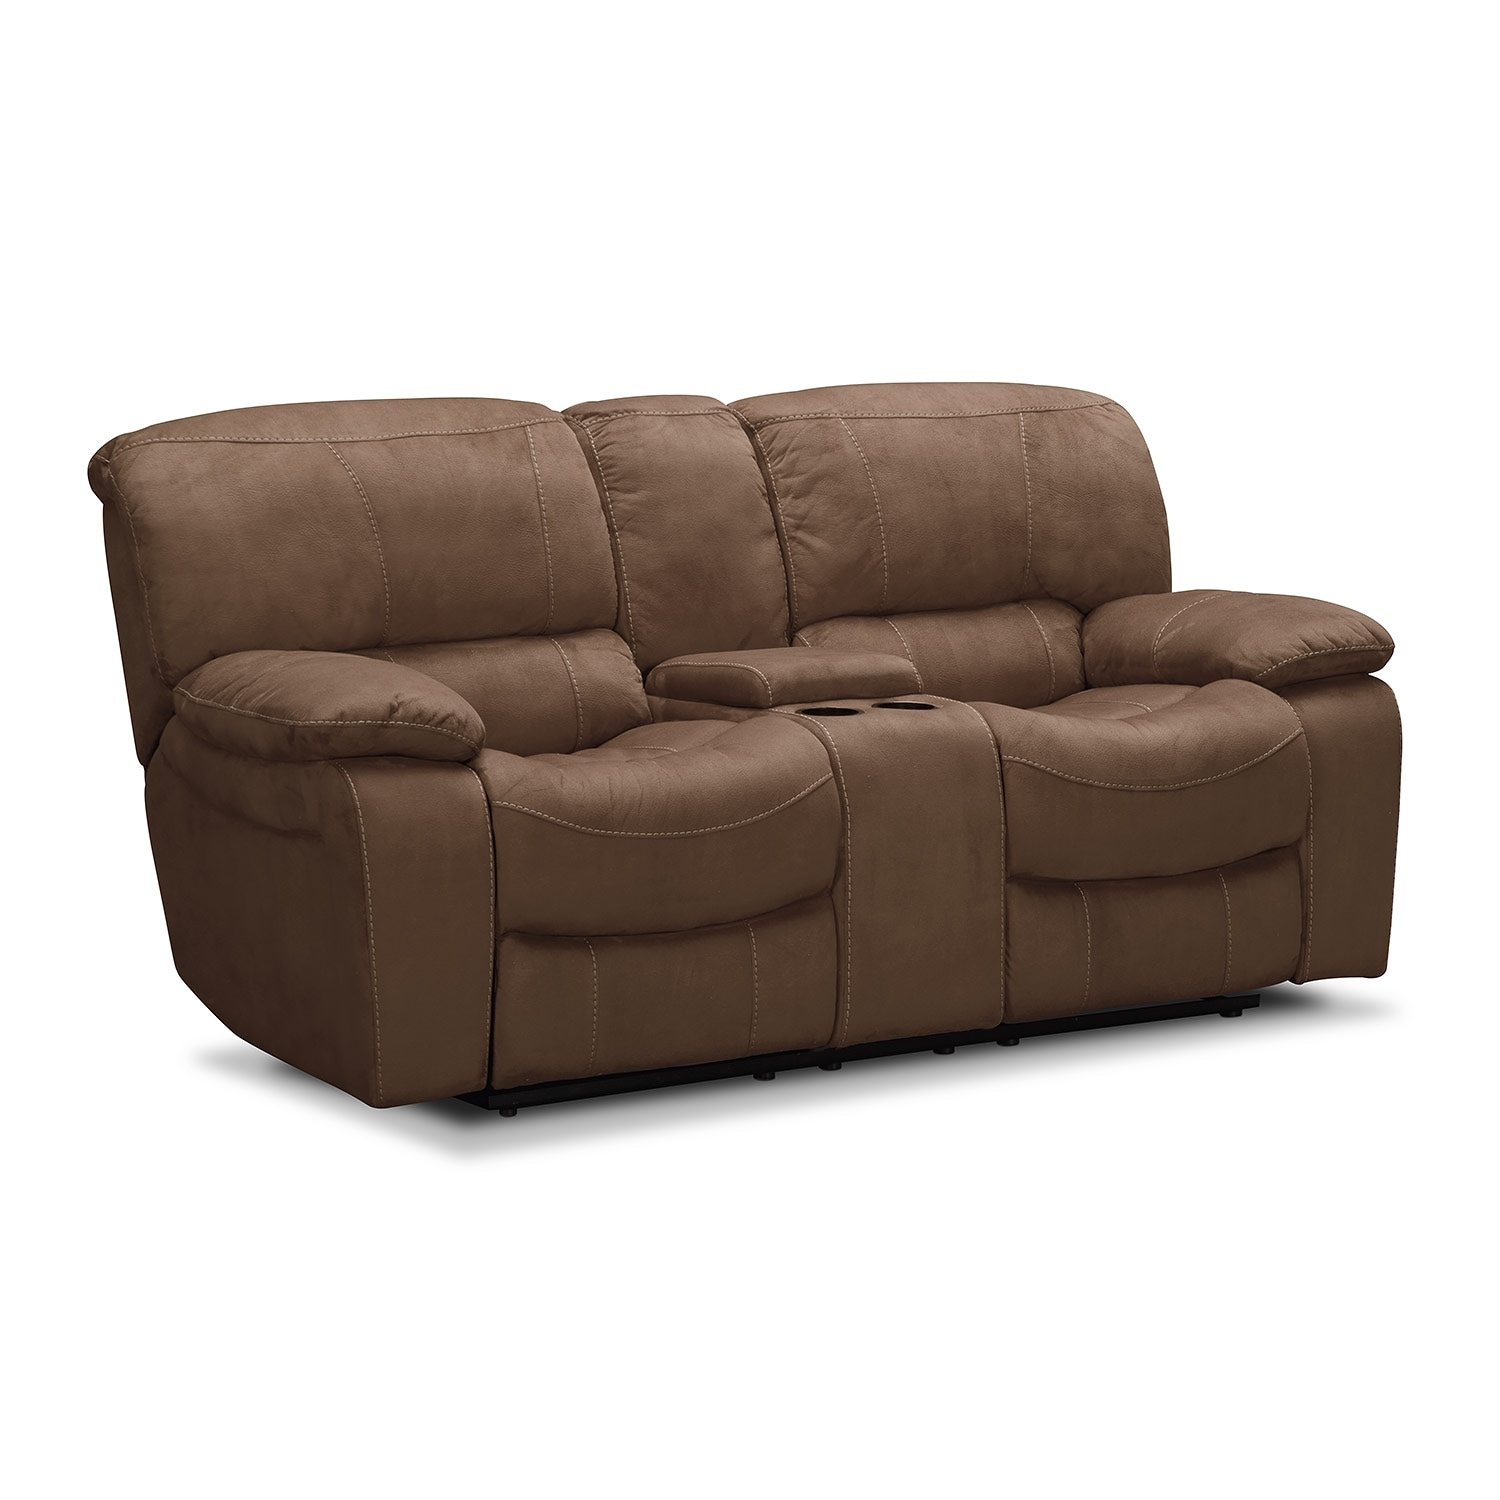 Dual Recliner 28 Images Coming Soon Valuecity Value